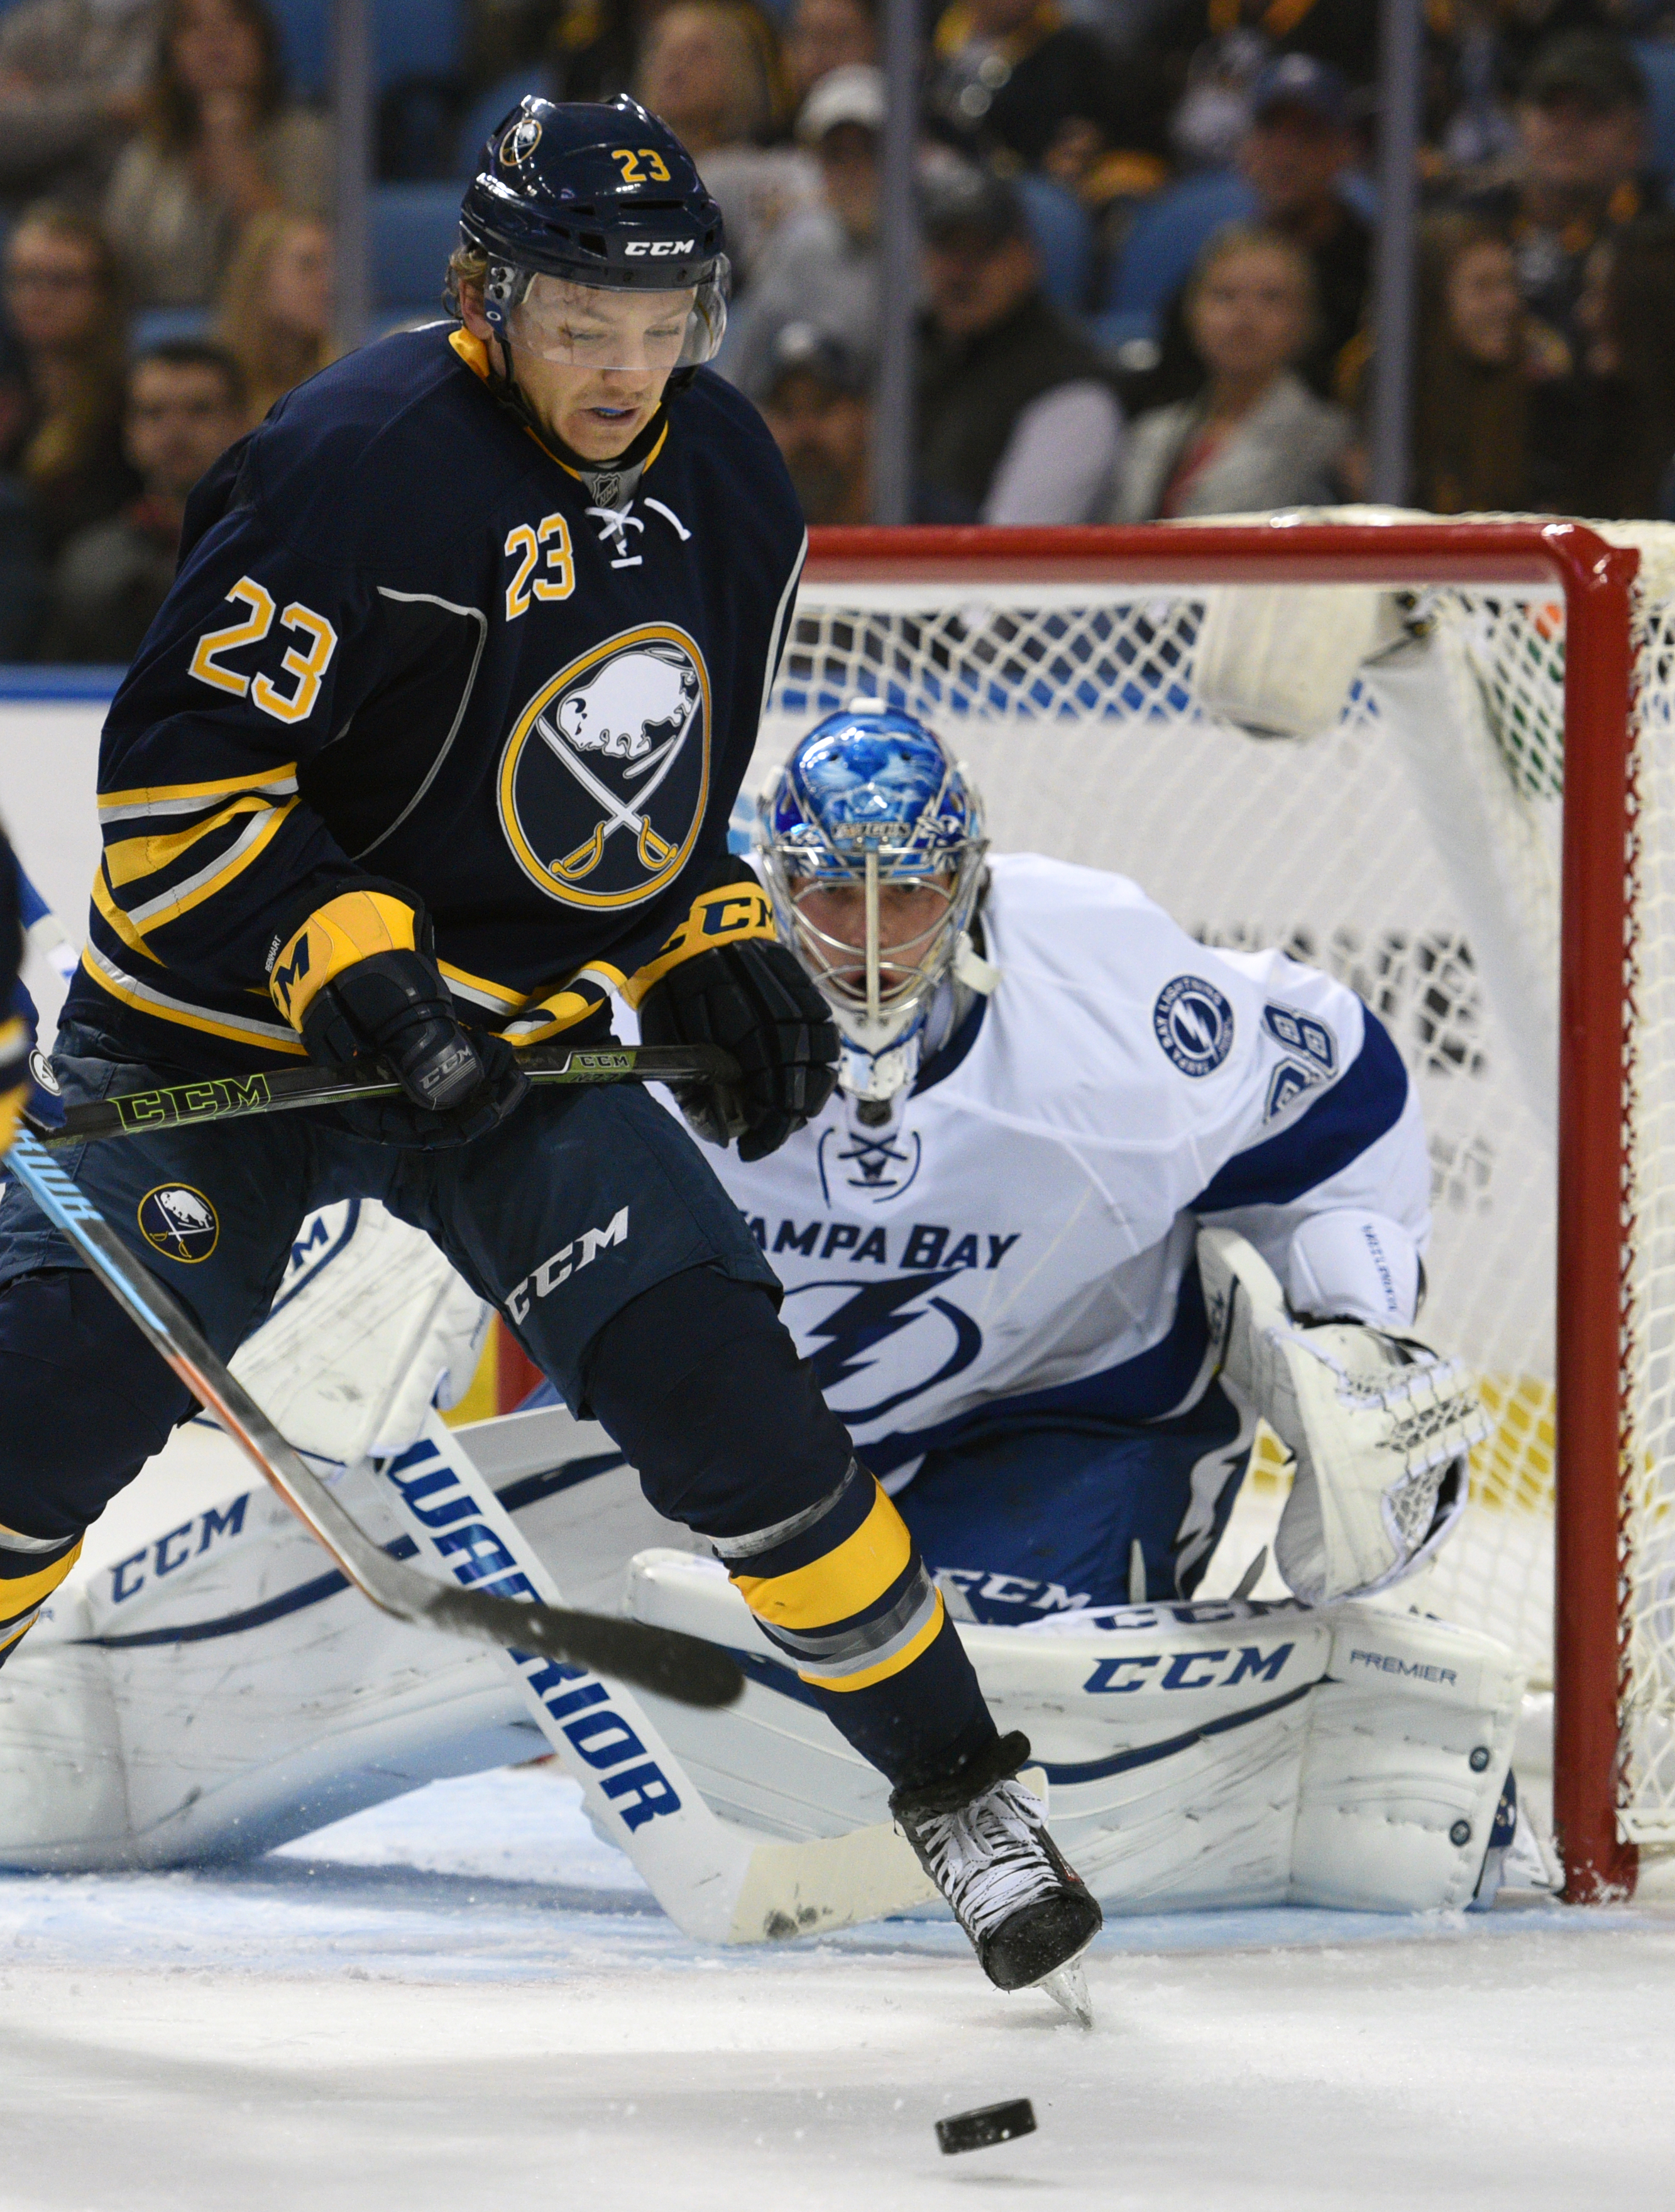 Buffalo Sabres center Sam Reinhart (23) battles for the puck in front of Tampa Bay Lightning goaltender Andrei Vasilevskiy (88), of Russia, during the first period of an NHL hockey game, Thursday Nov. 5, 2015, in Buffalo, N.Y. (AP Photo/Gary Wiepert)